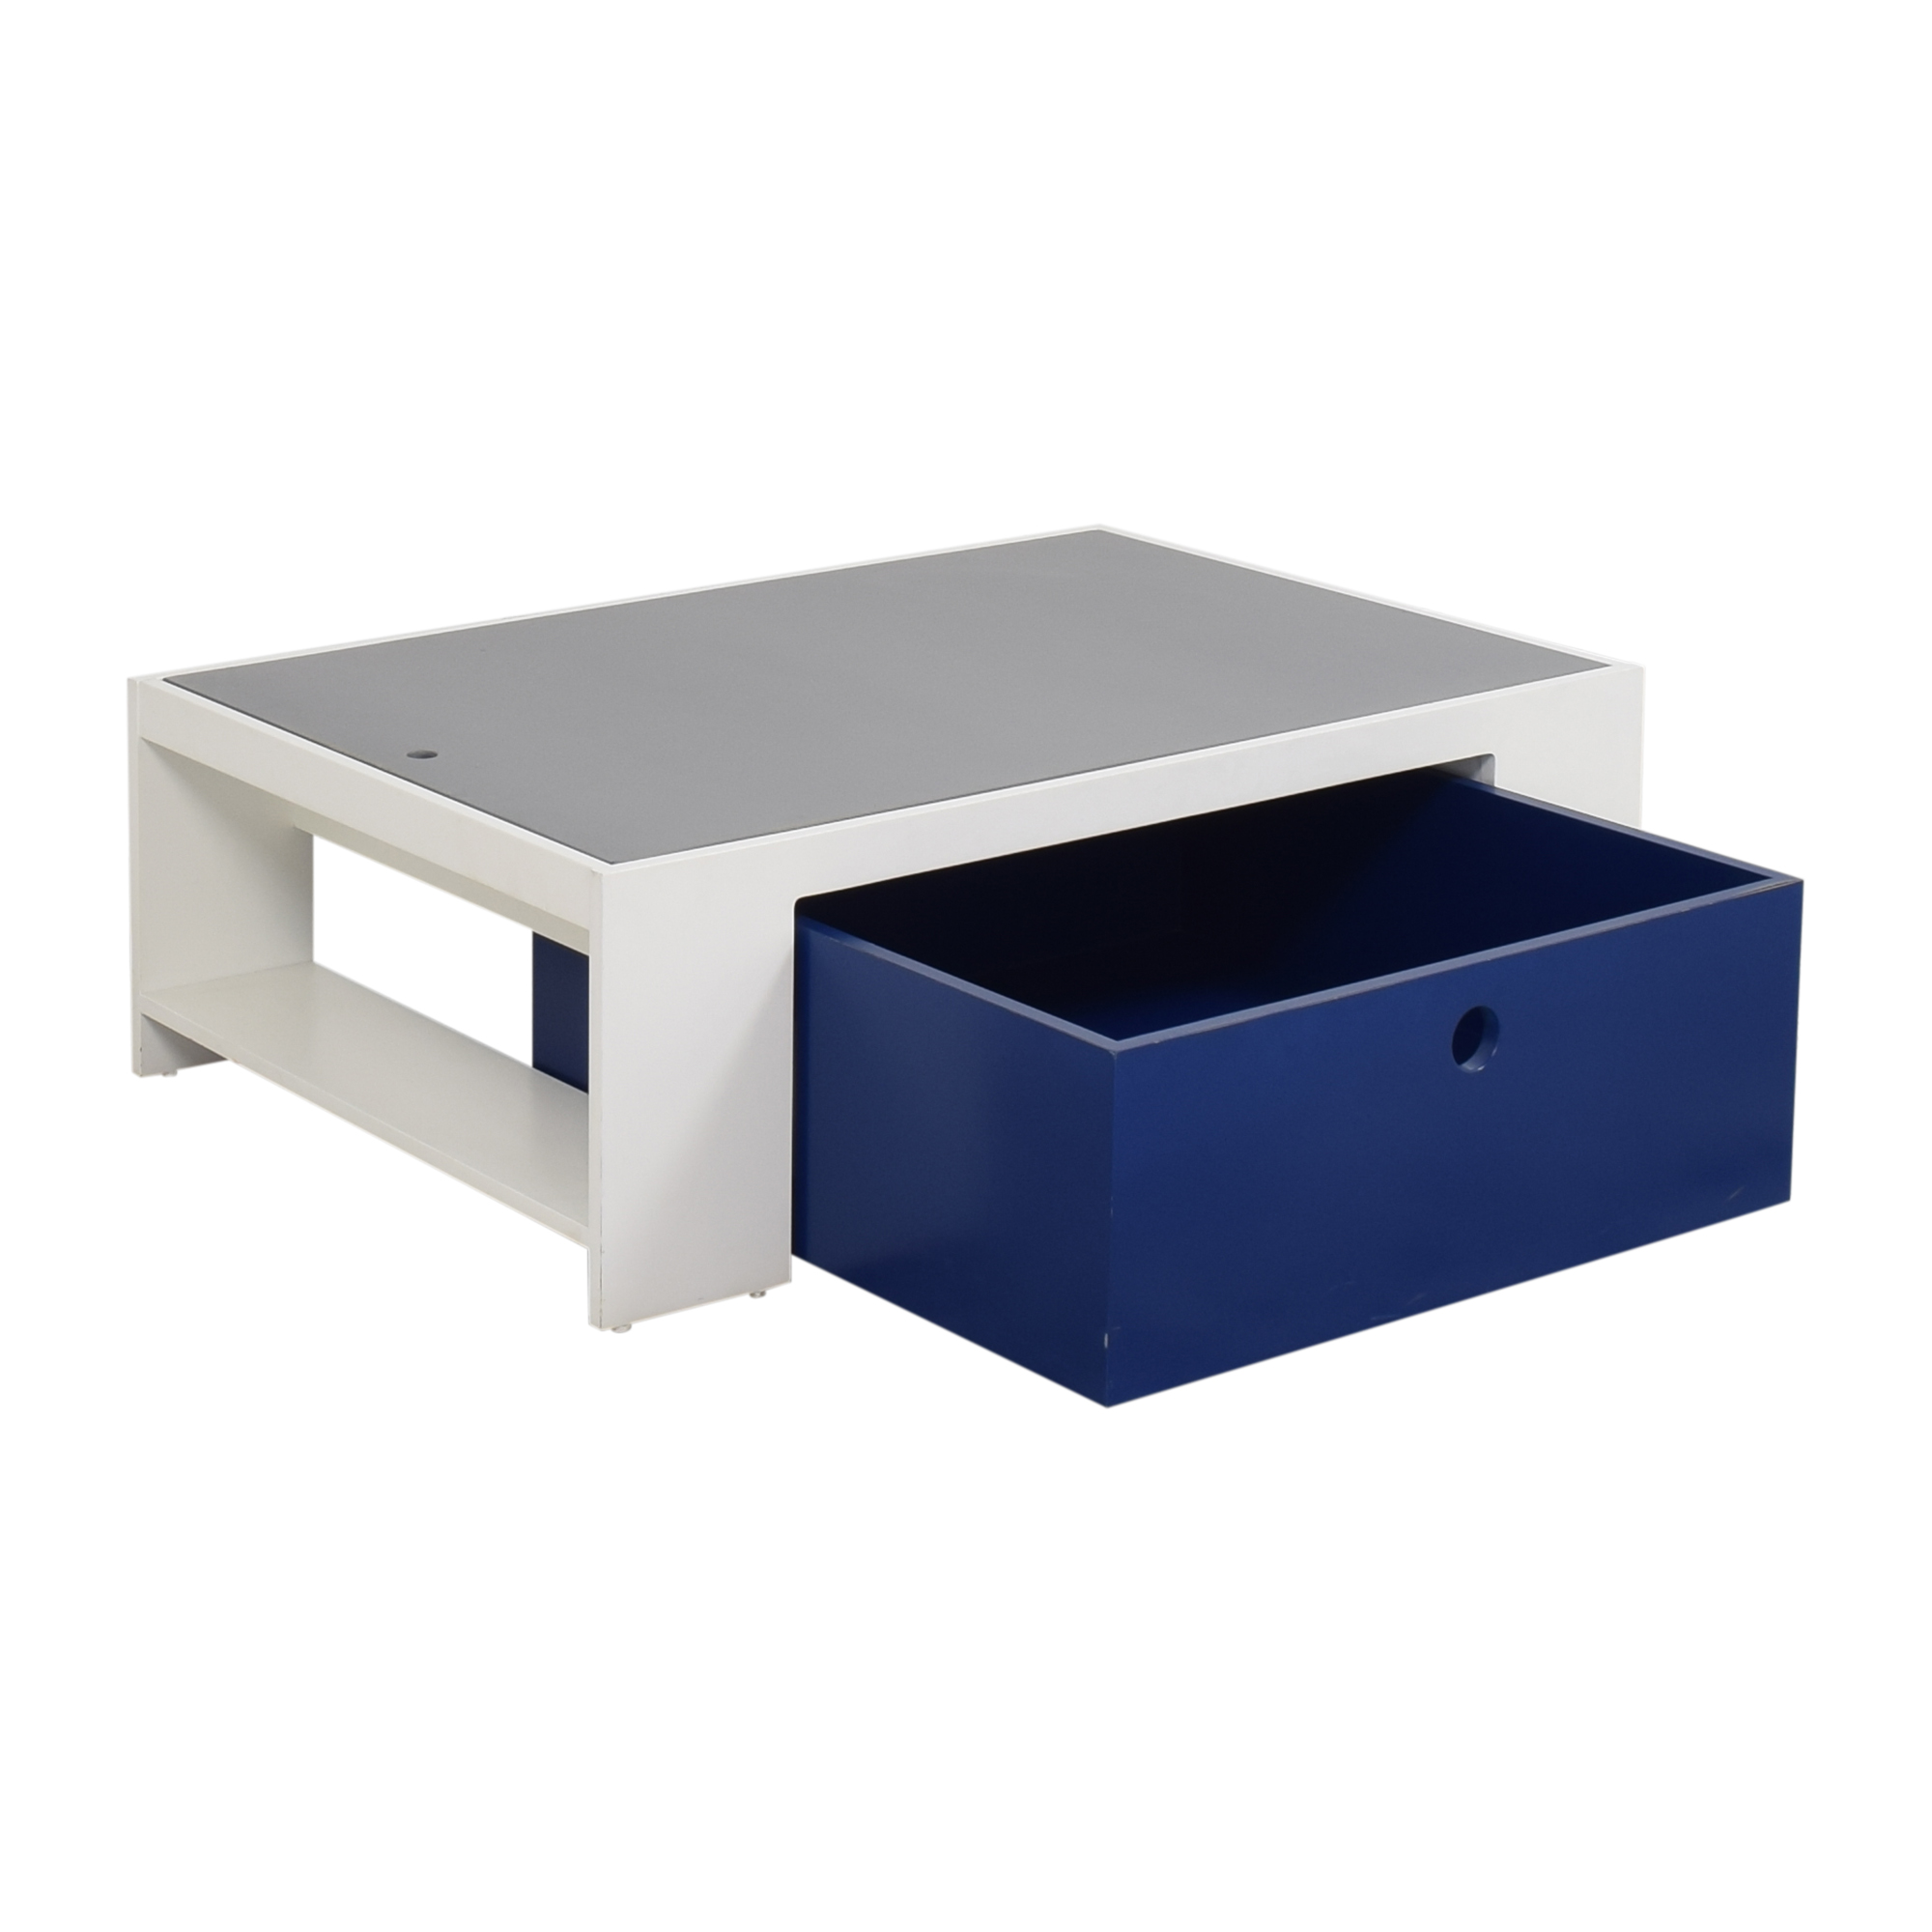 ducduc Parker Playtable  / Tables